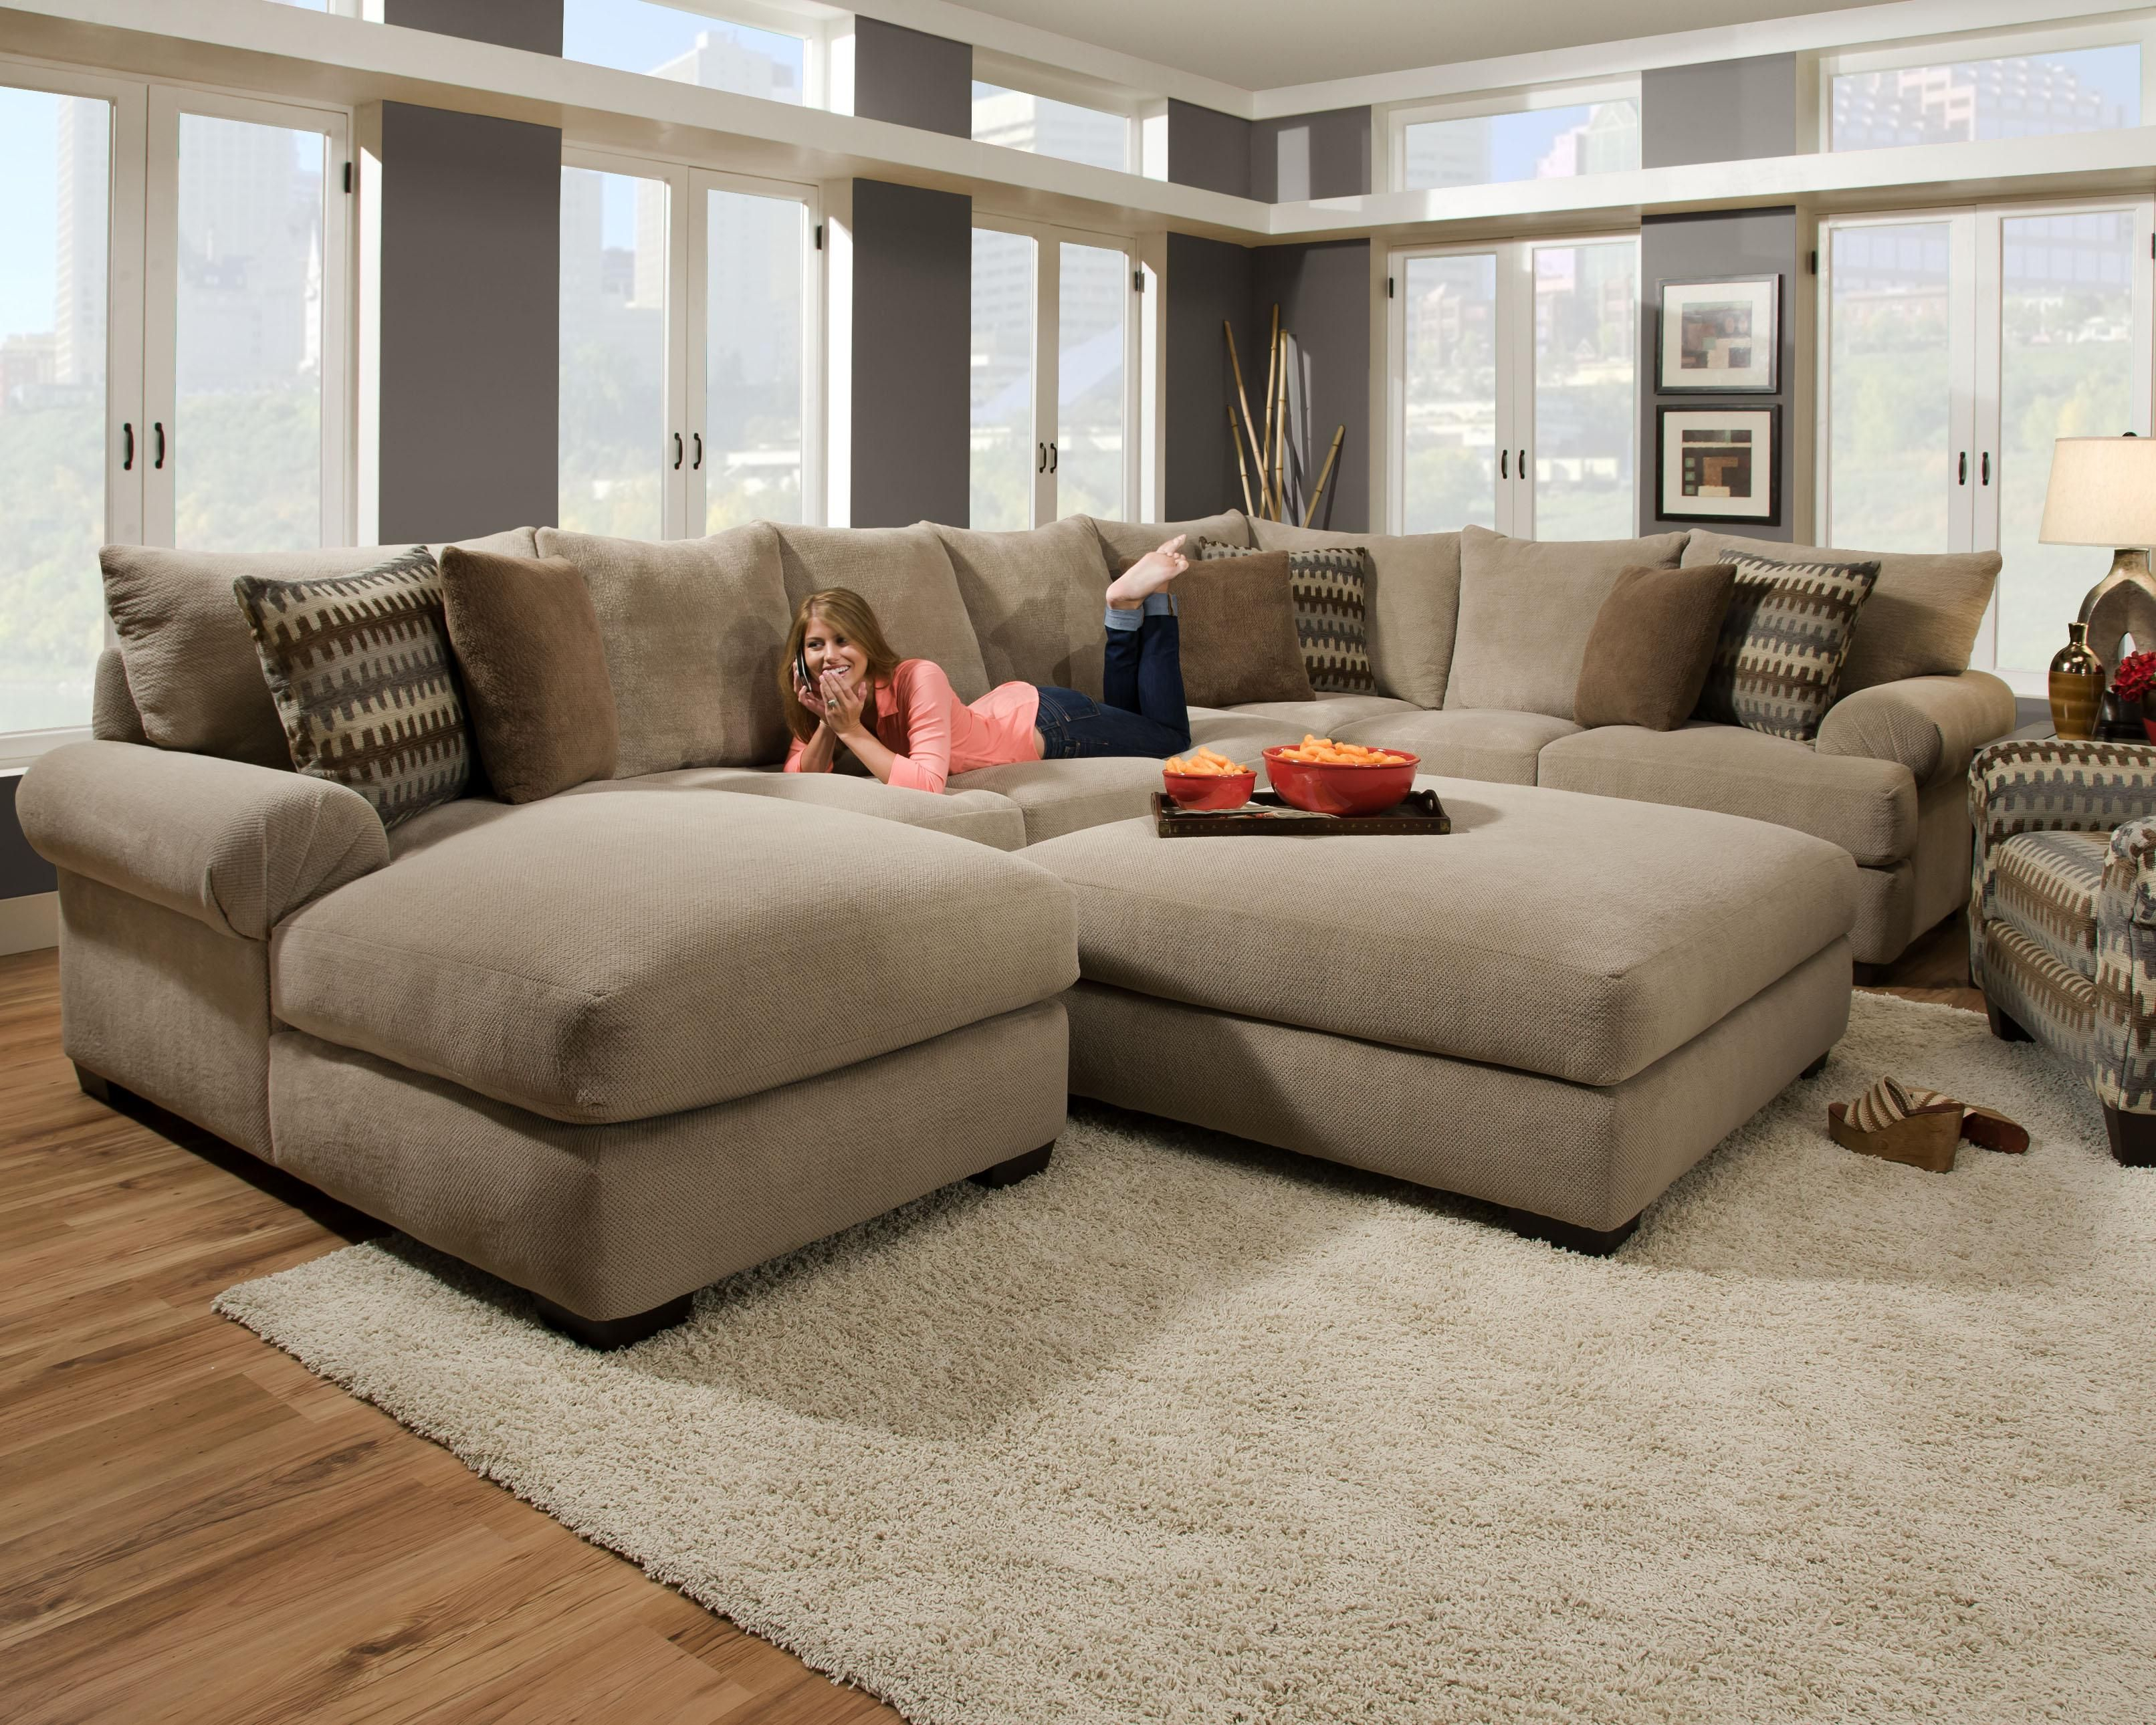 Pinsofascouch On Sofa Chairs | Pinterest | Living Room pertaining to Cohen Foam Oversized Sofa Chairs